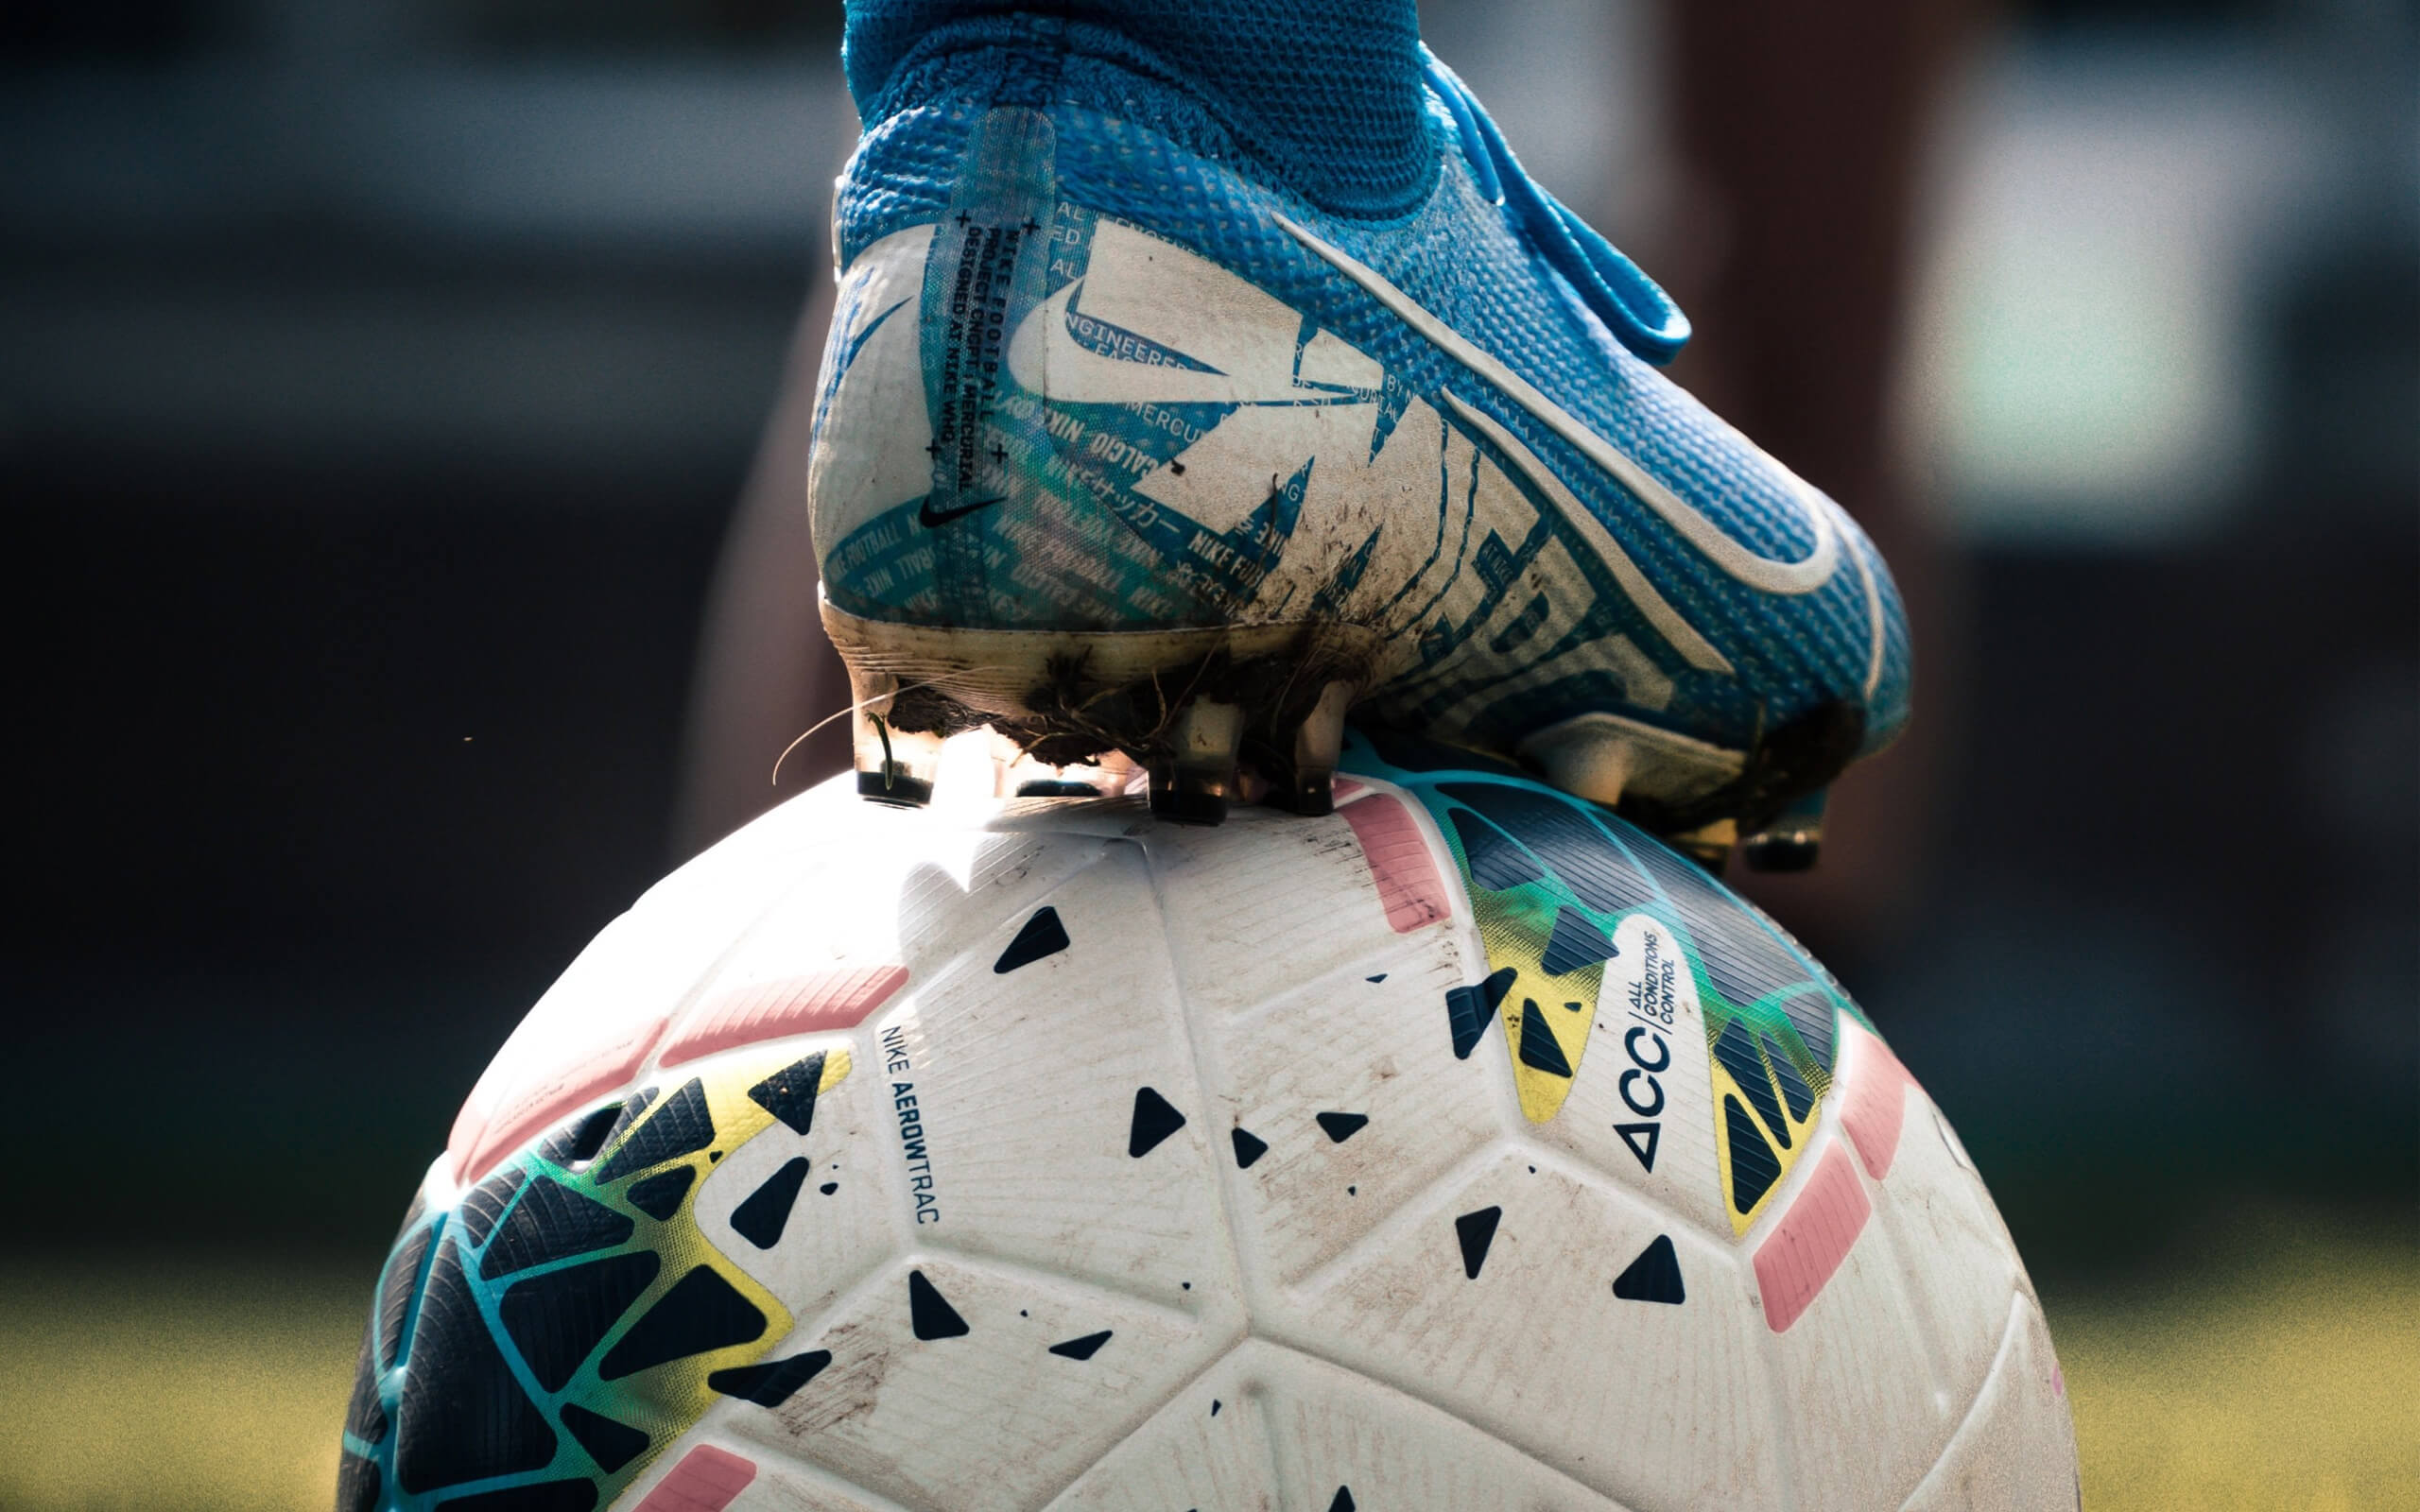 A blue football boot resting on top of a football.